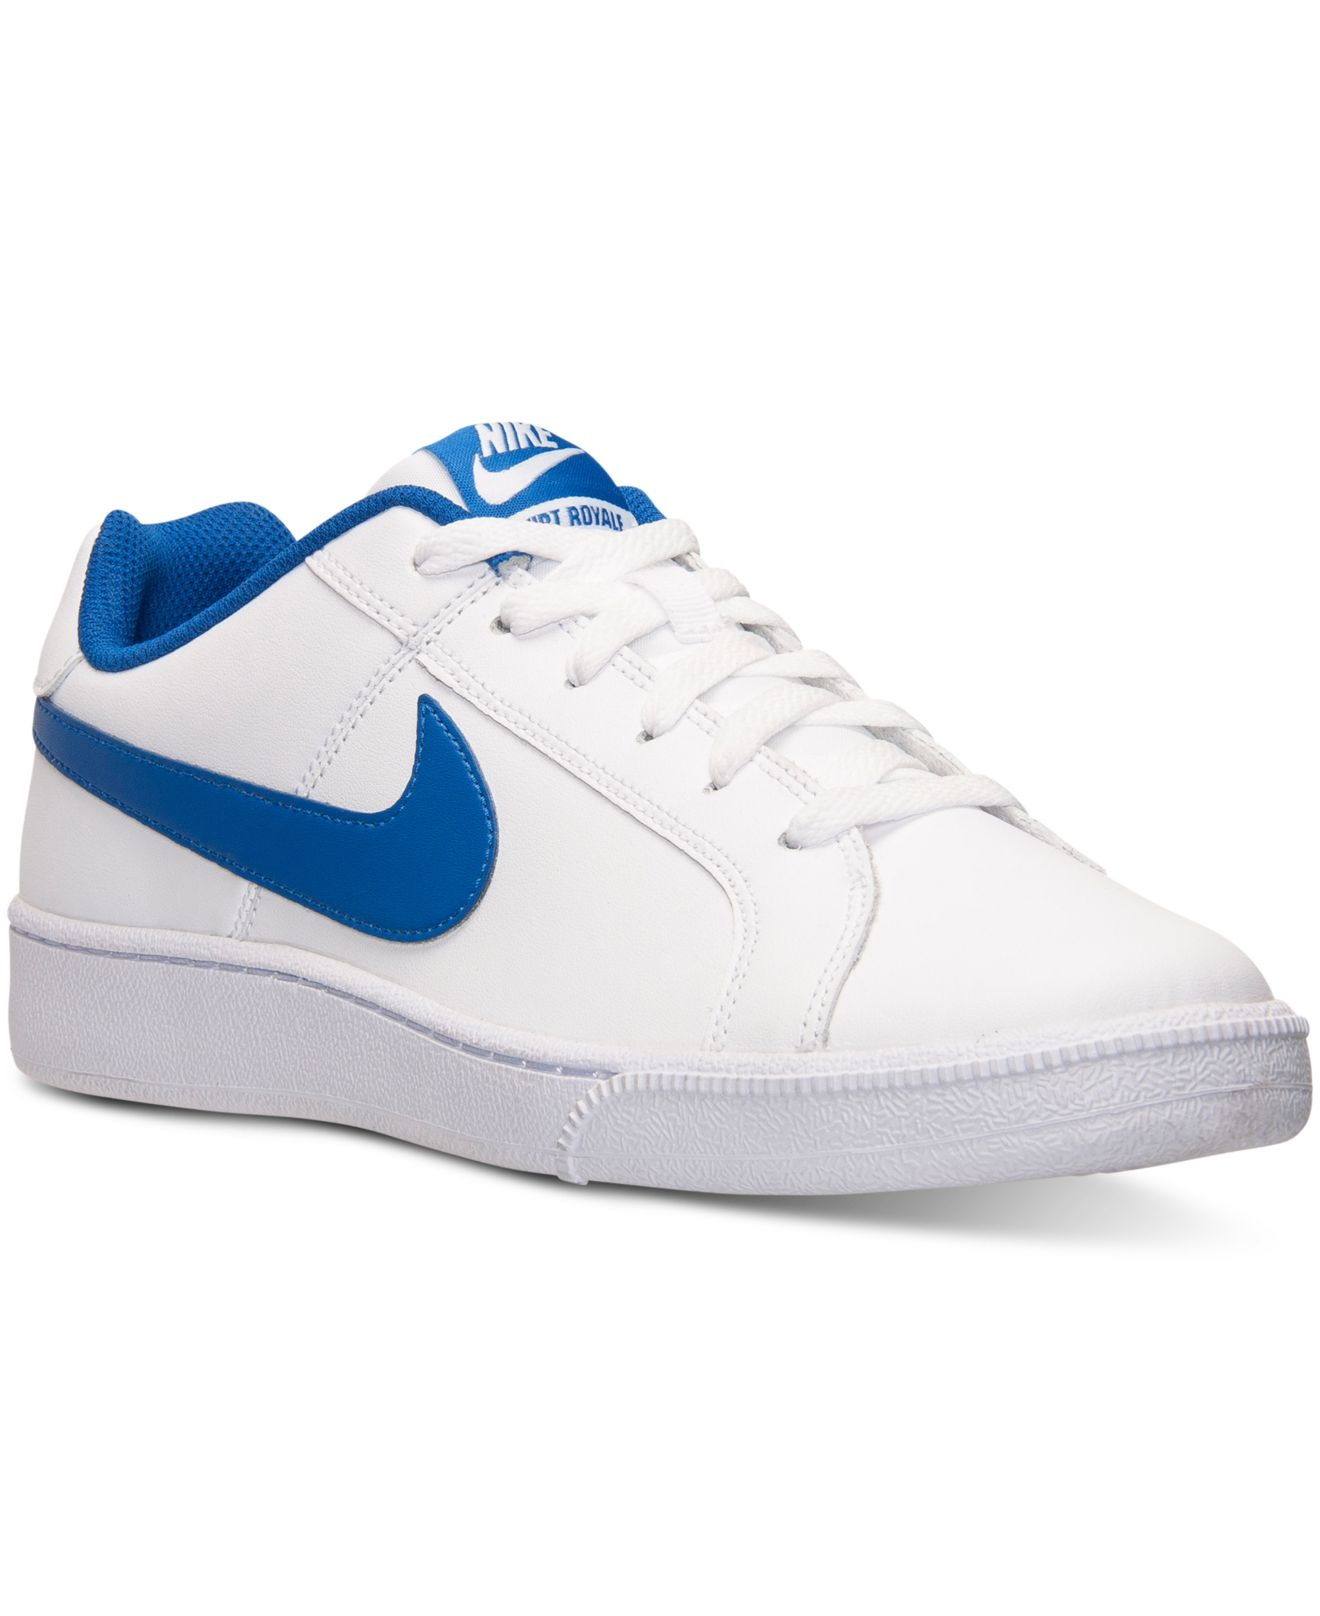 3c5f9032d4b3 Lyst - Nike Men s Court Royale Casual Sneakers From Finish Line in ...